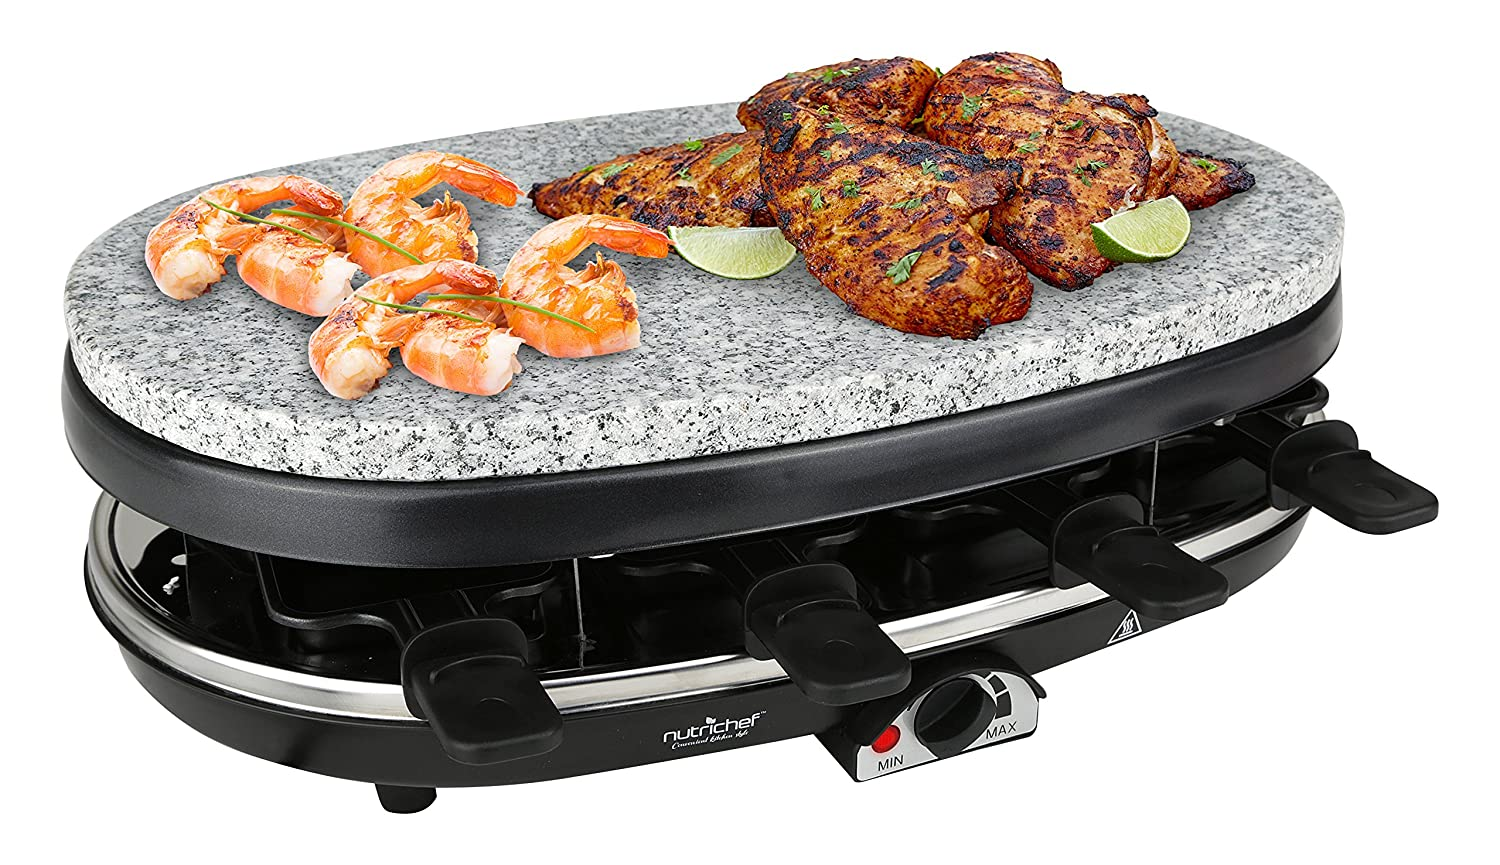 NutriChef Raclette Grill, 8 Person Party Cooktop, Countertop Safe, Stone Plate & Metal Grills, 1000 Watt, 8 Paddles - Great for a Family Get Together or Party (PKGRST46)